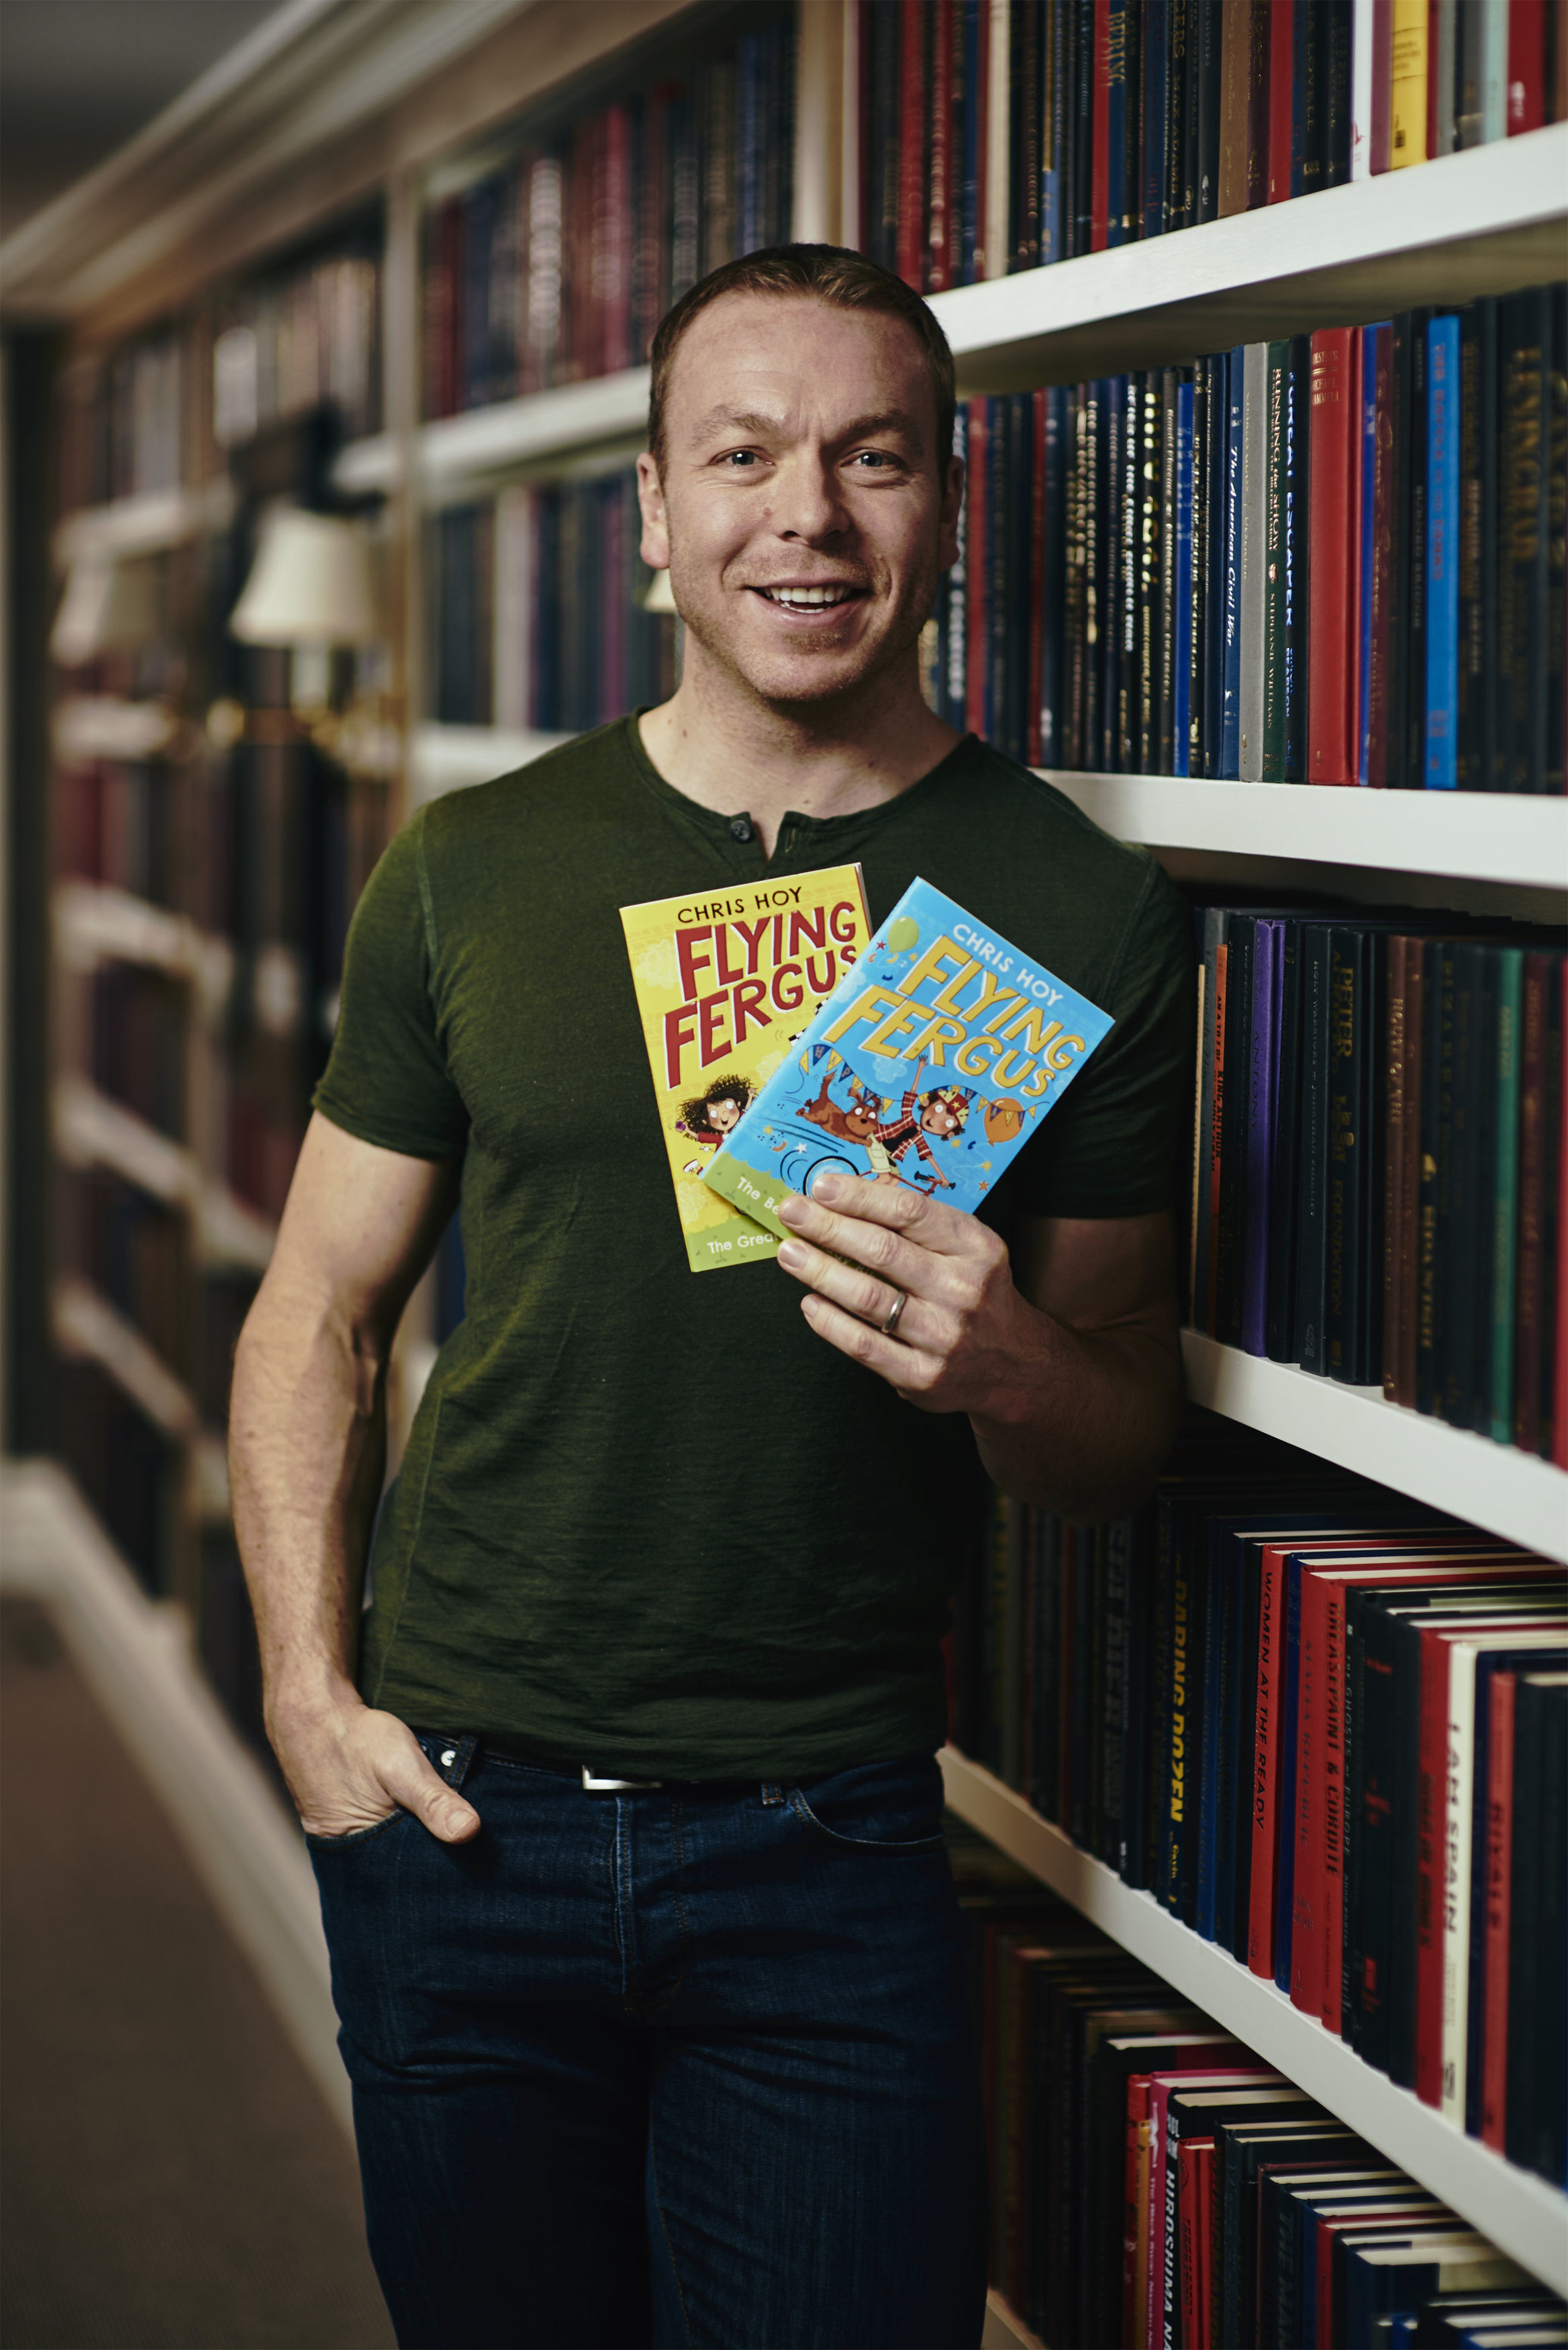 Chris Hoy with his books